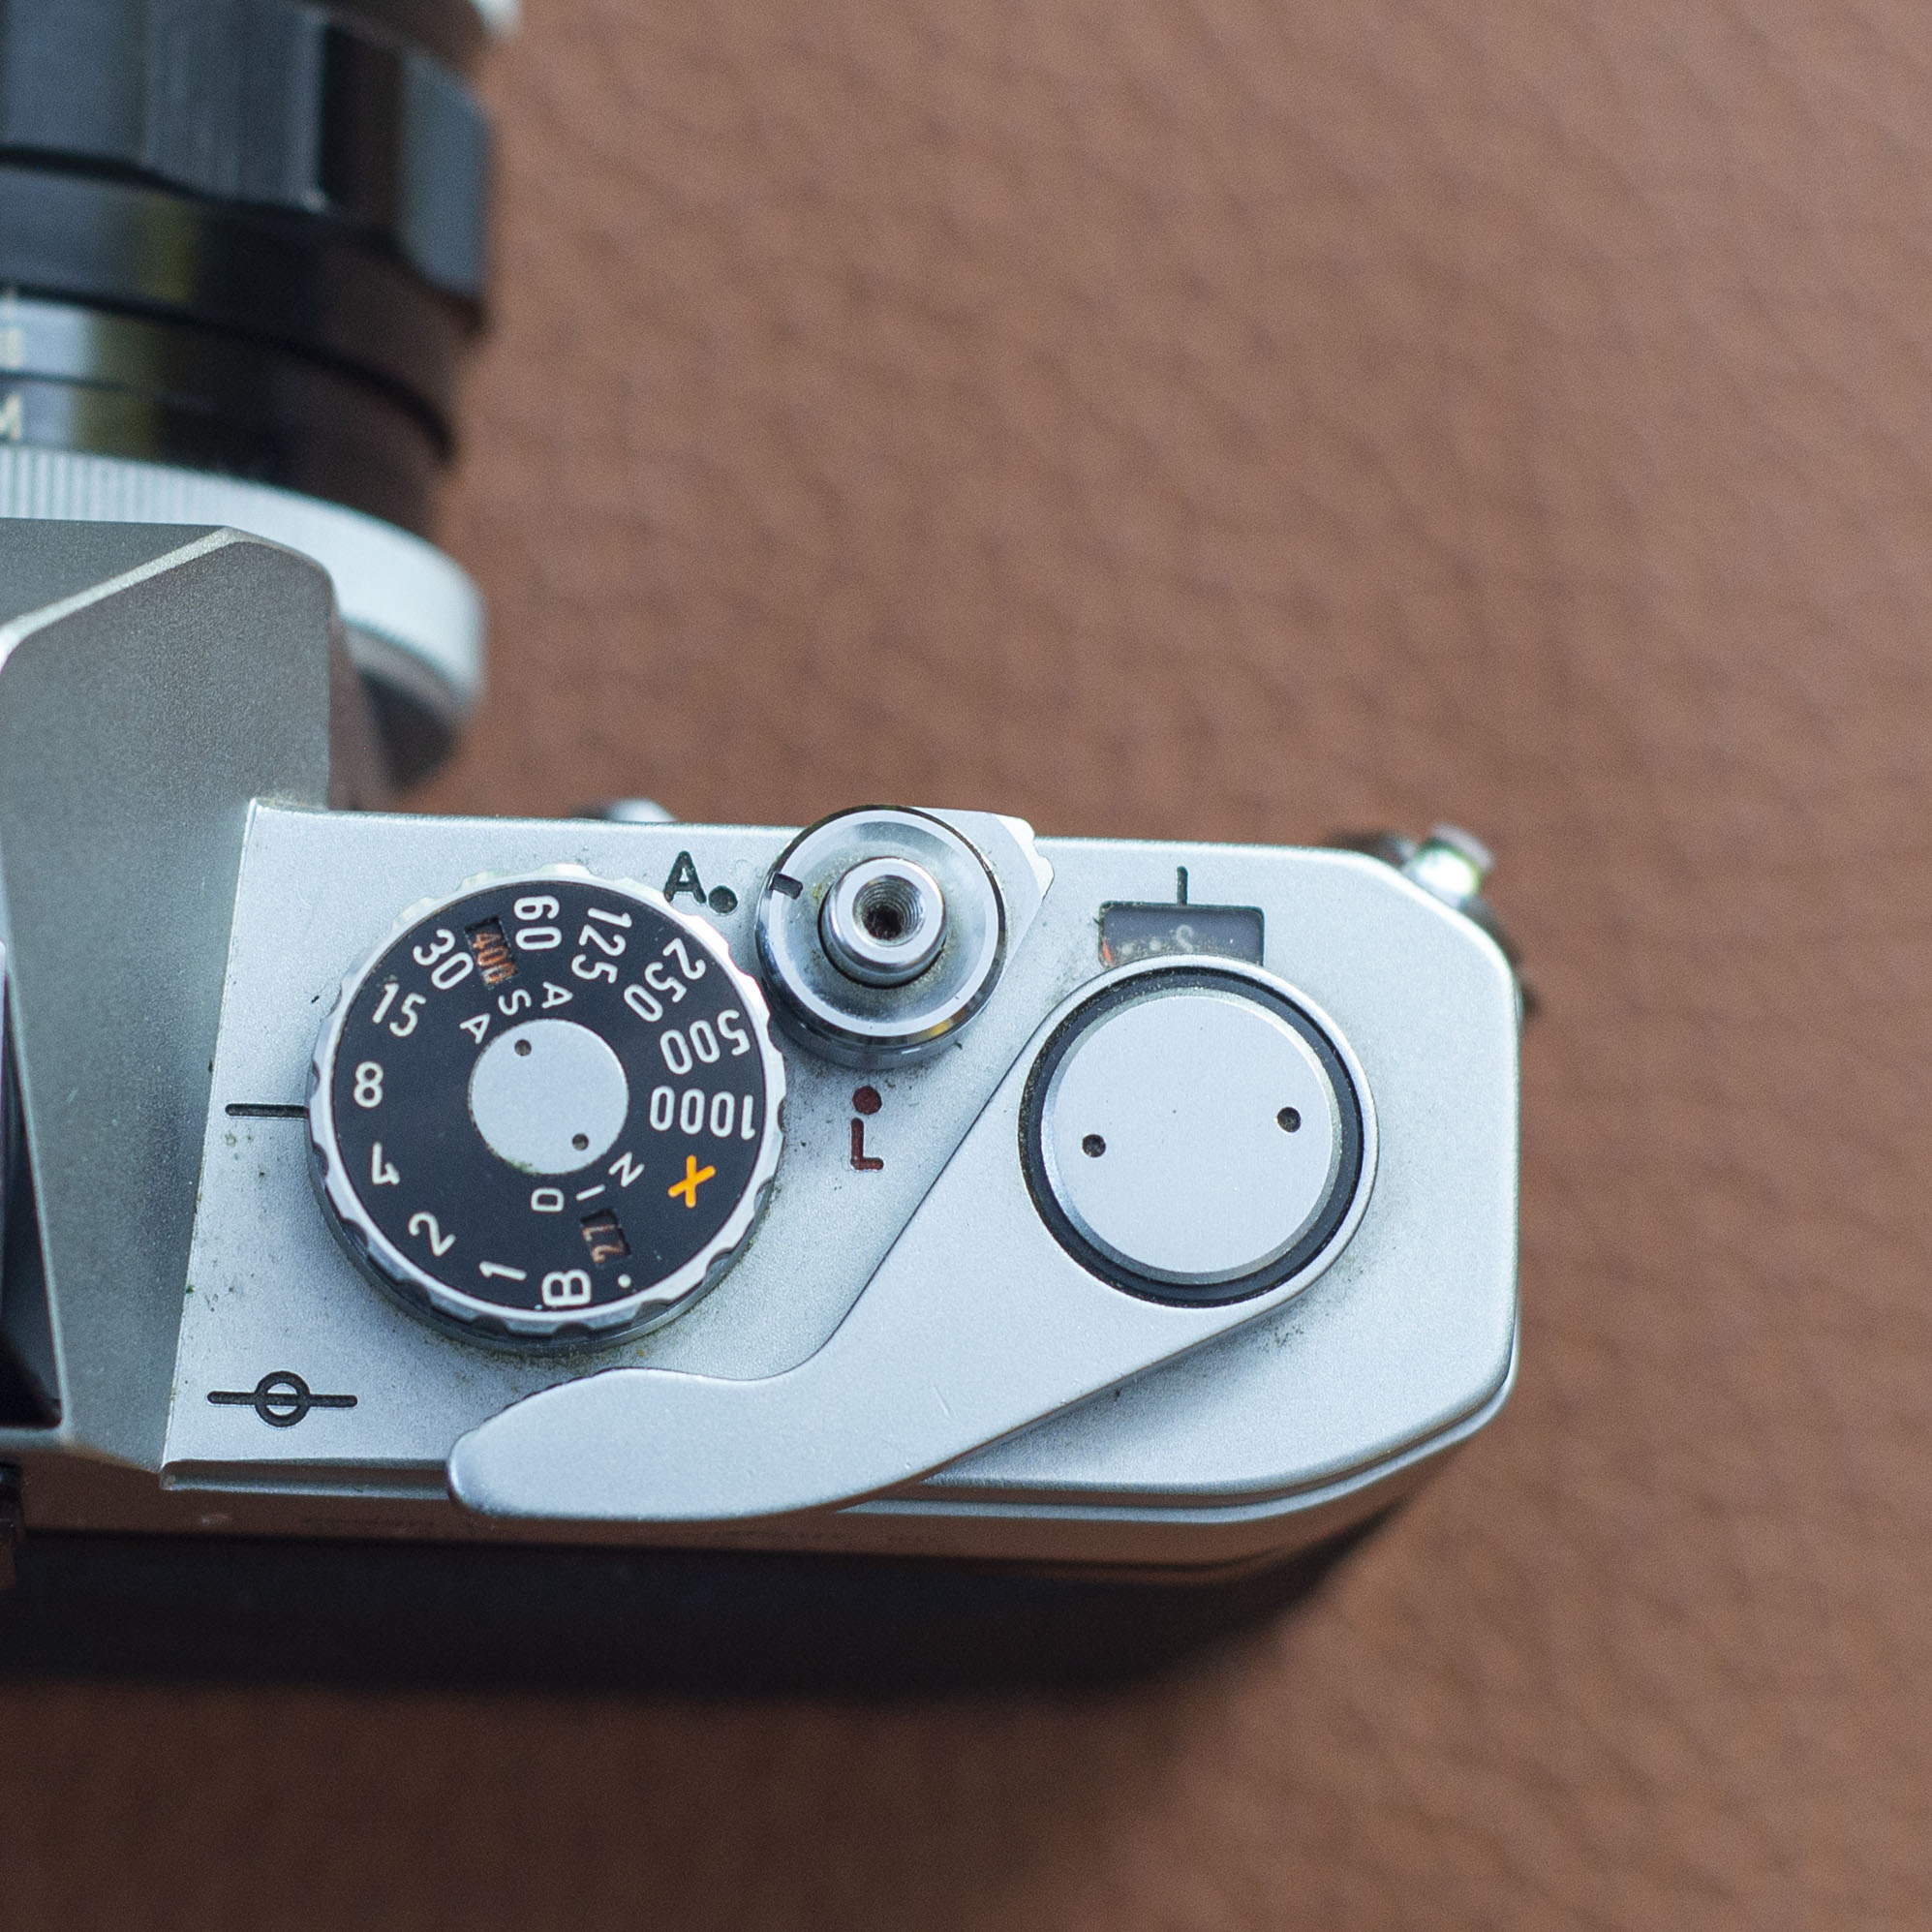 Canon FT shutter speed and ISO dials